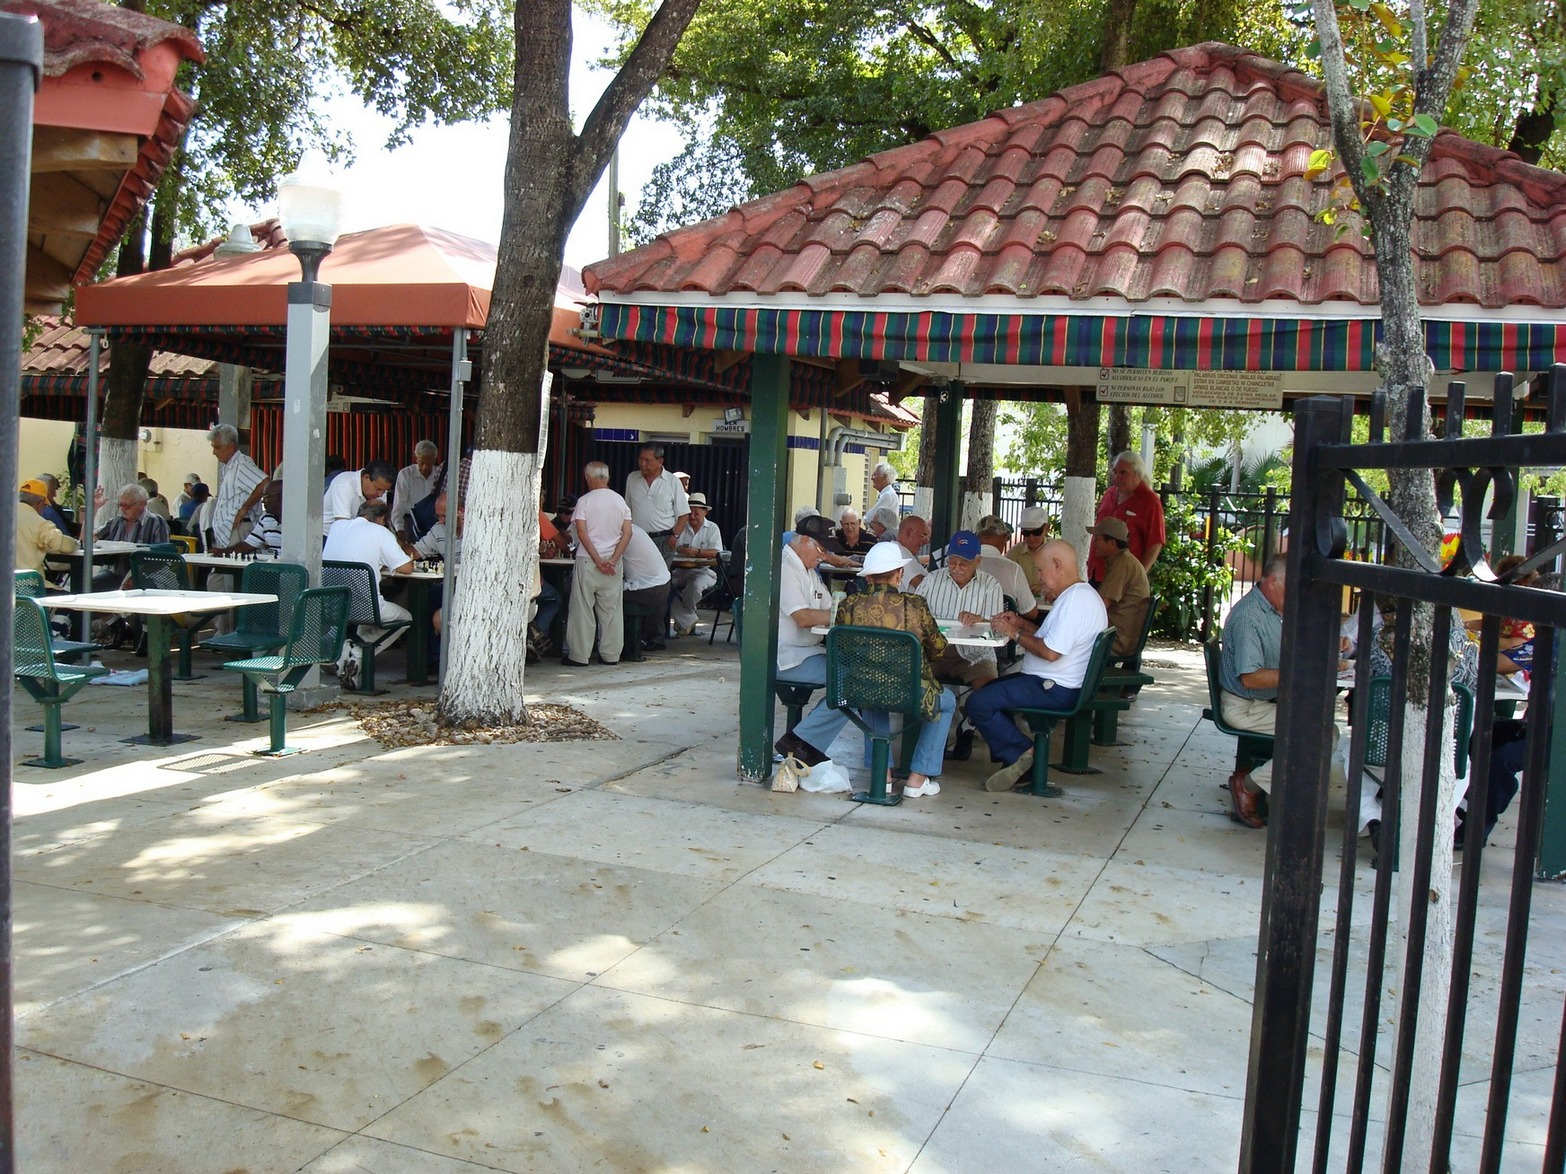 Cuban District, Domino, Miami